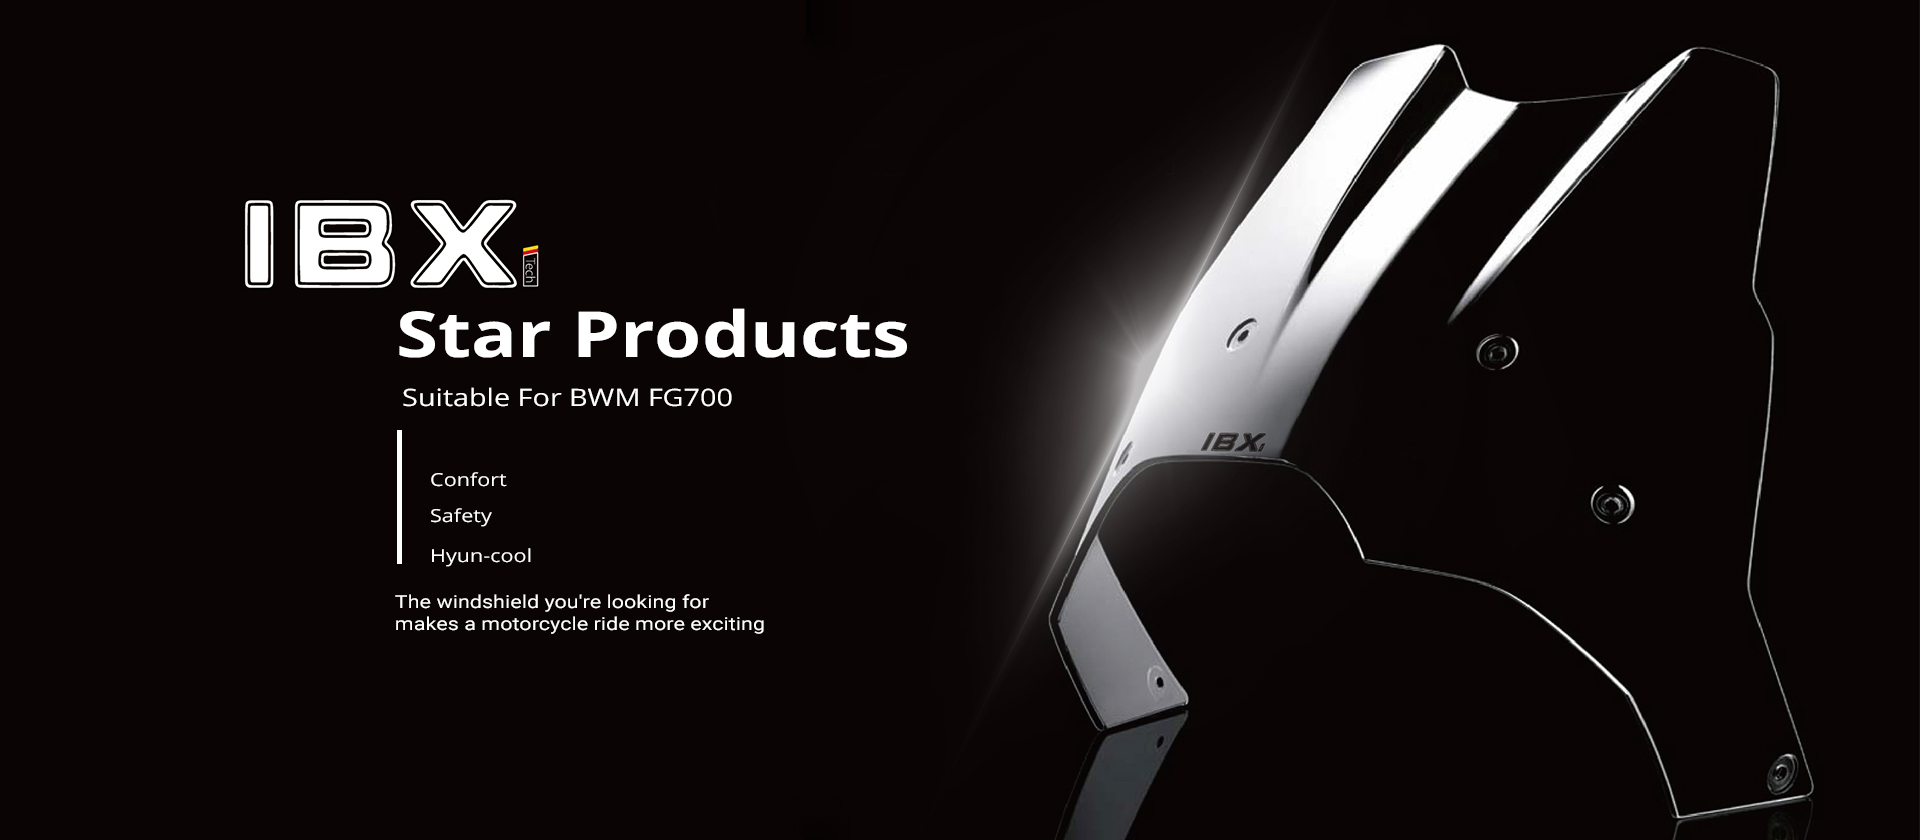 IBX Star Products——Suitable For BWM FG700